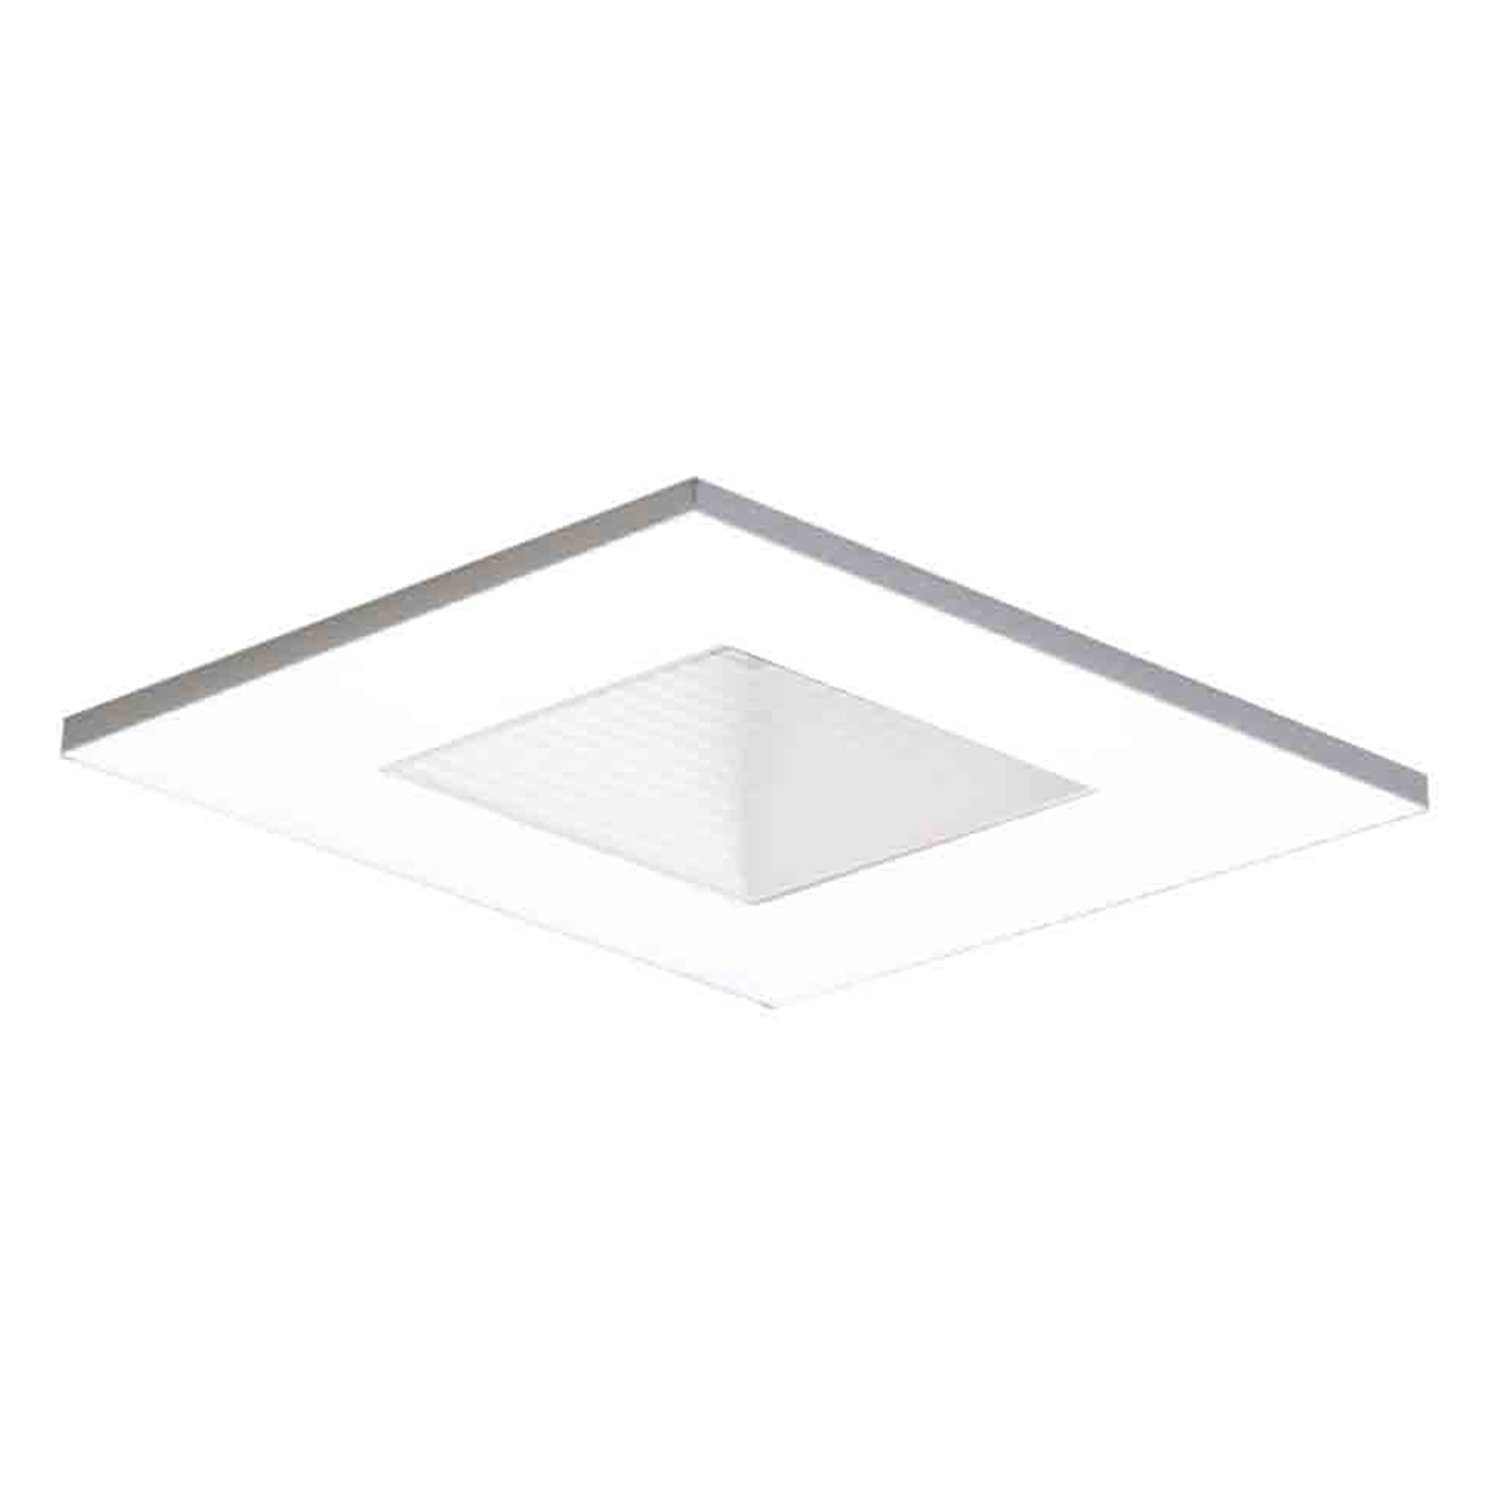 amazoncom halo recessed whwb inch degree trim  - amazoncom halo recessed whwb inch degree trim adjustable squarewith baffle white home improvement